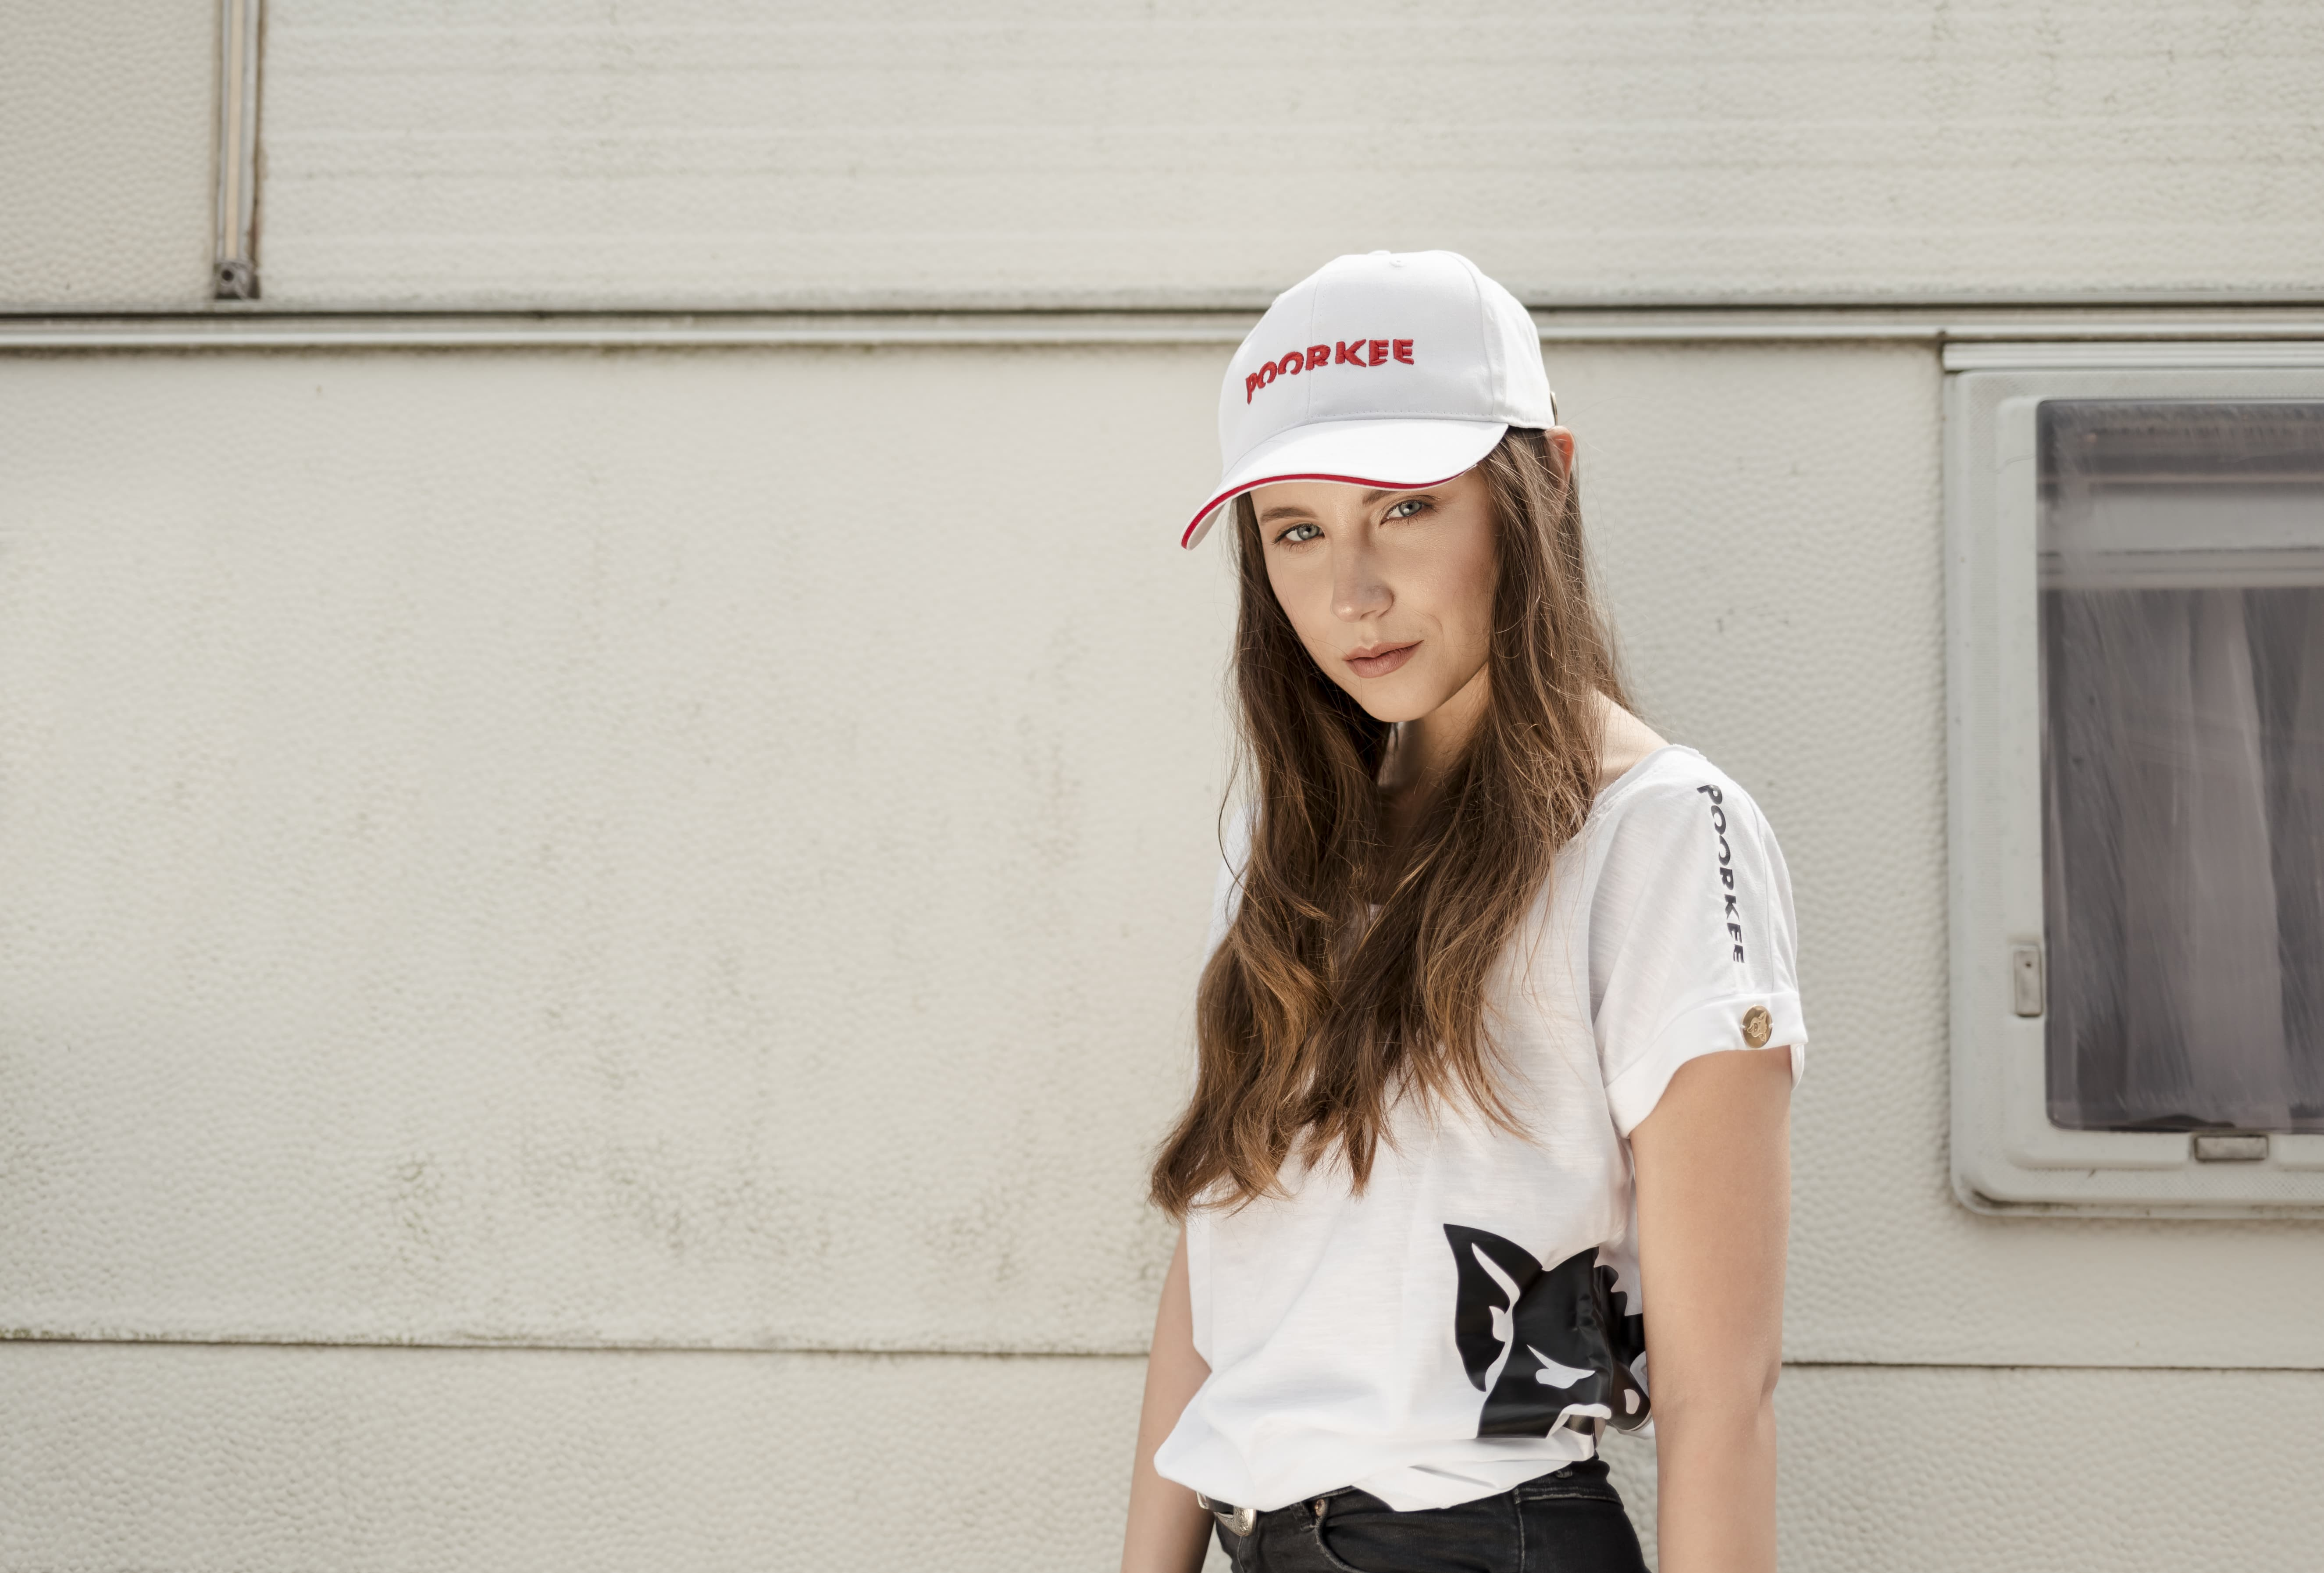 girl in long hair, a white baseball cap and a white T-shirt on the camper's background